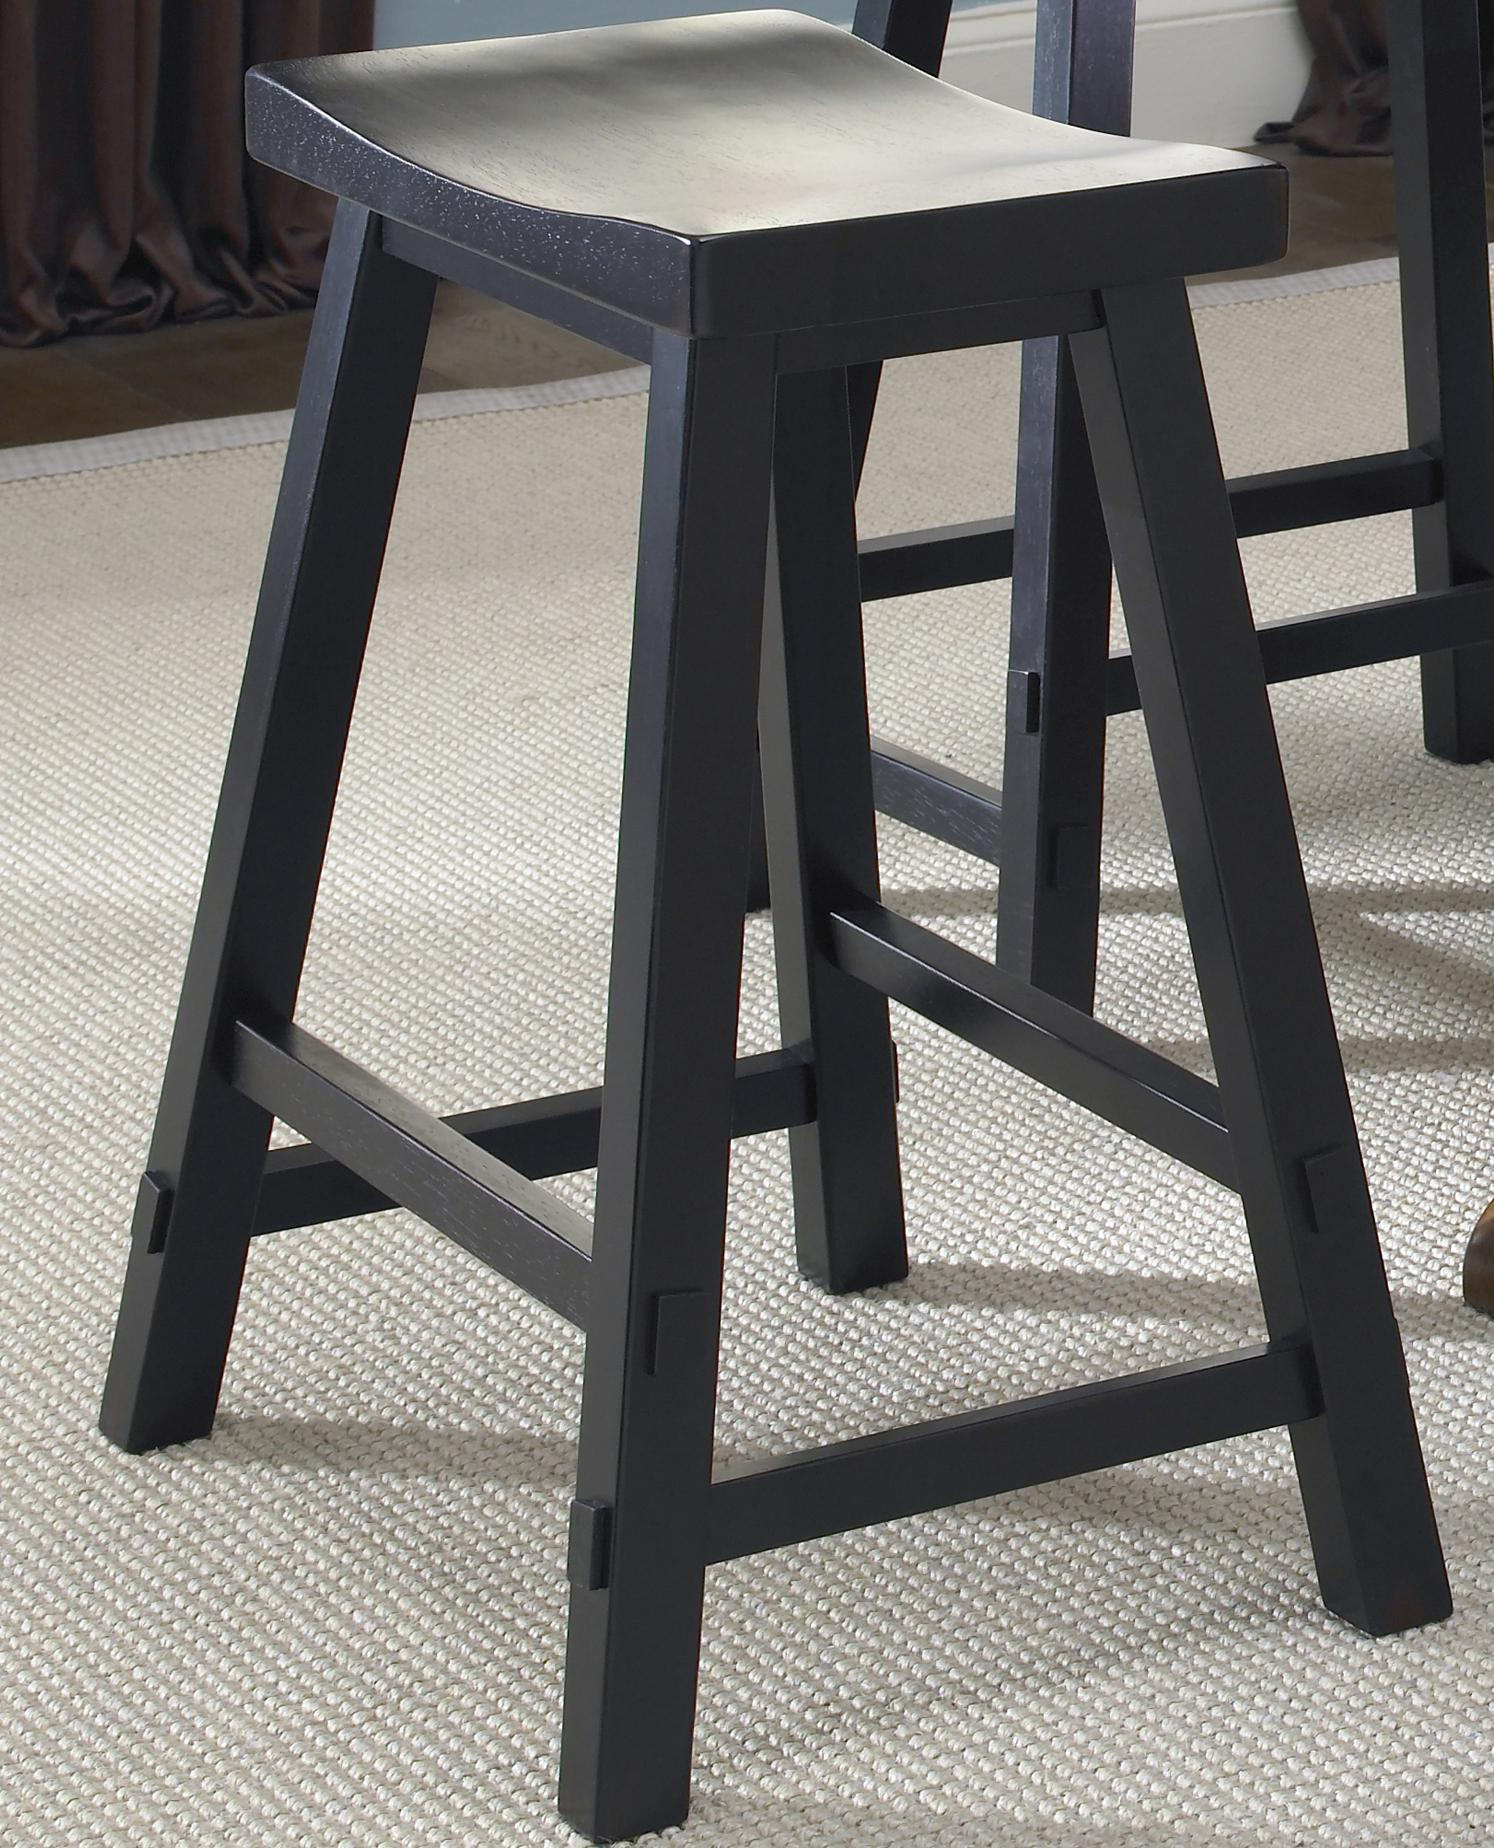 Liberty Furniture Creations II 30 Inch Sawhorse Barstool - Item Number: 48-B1830